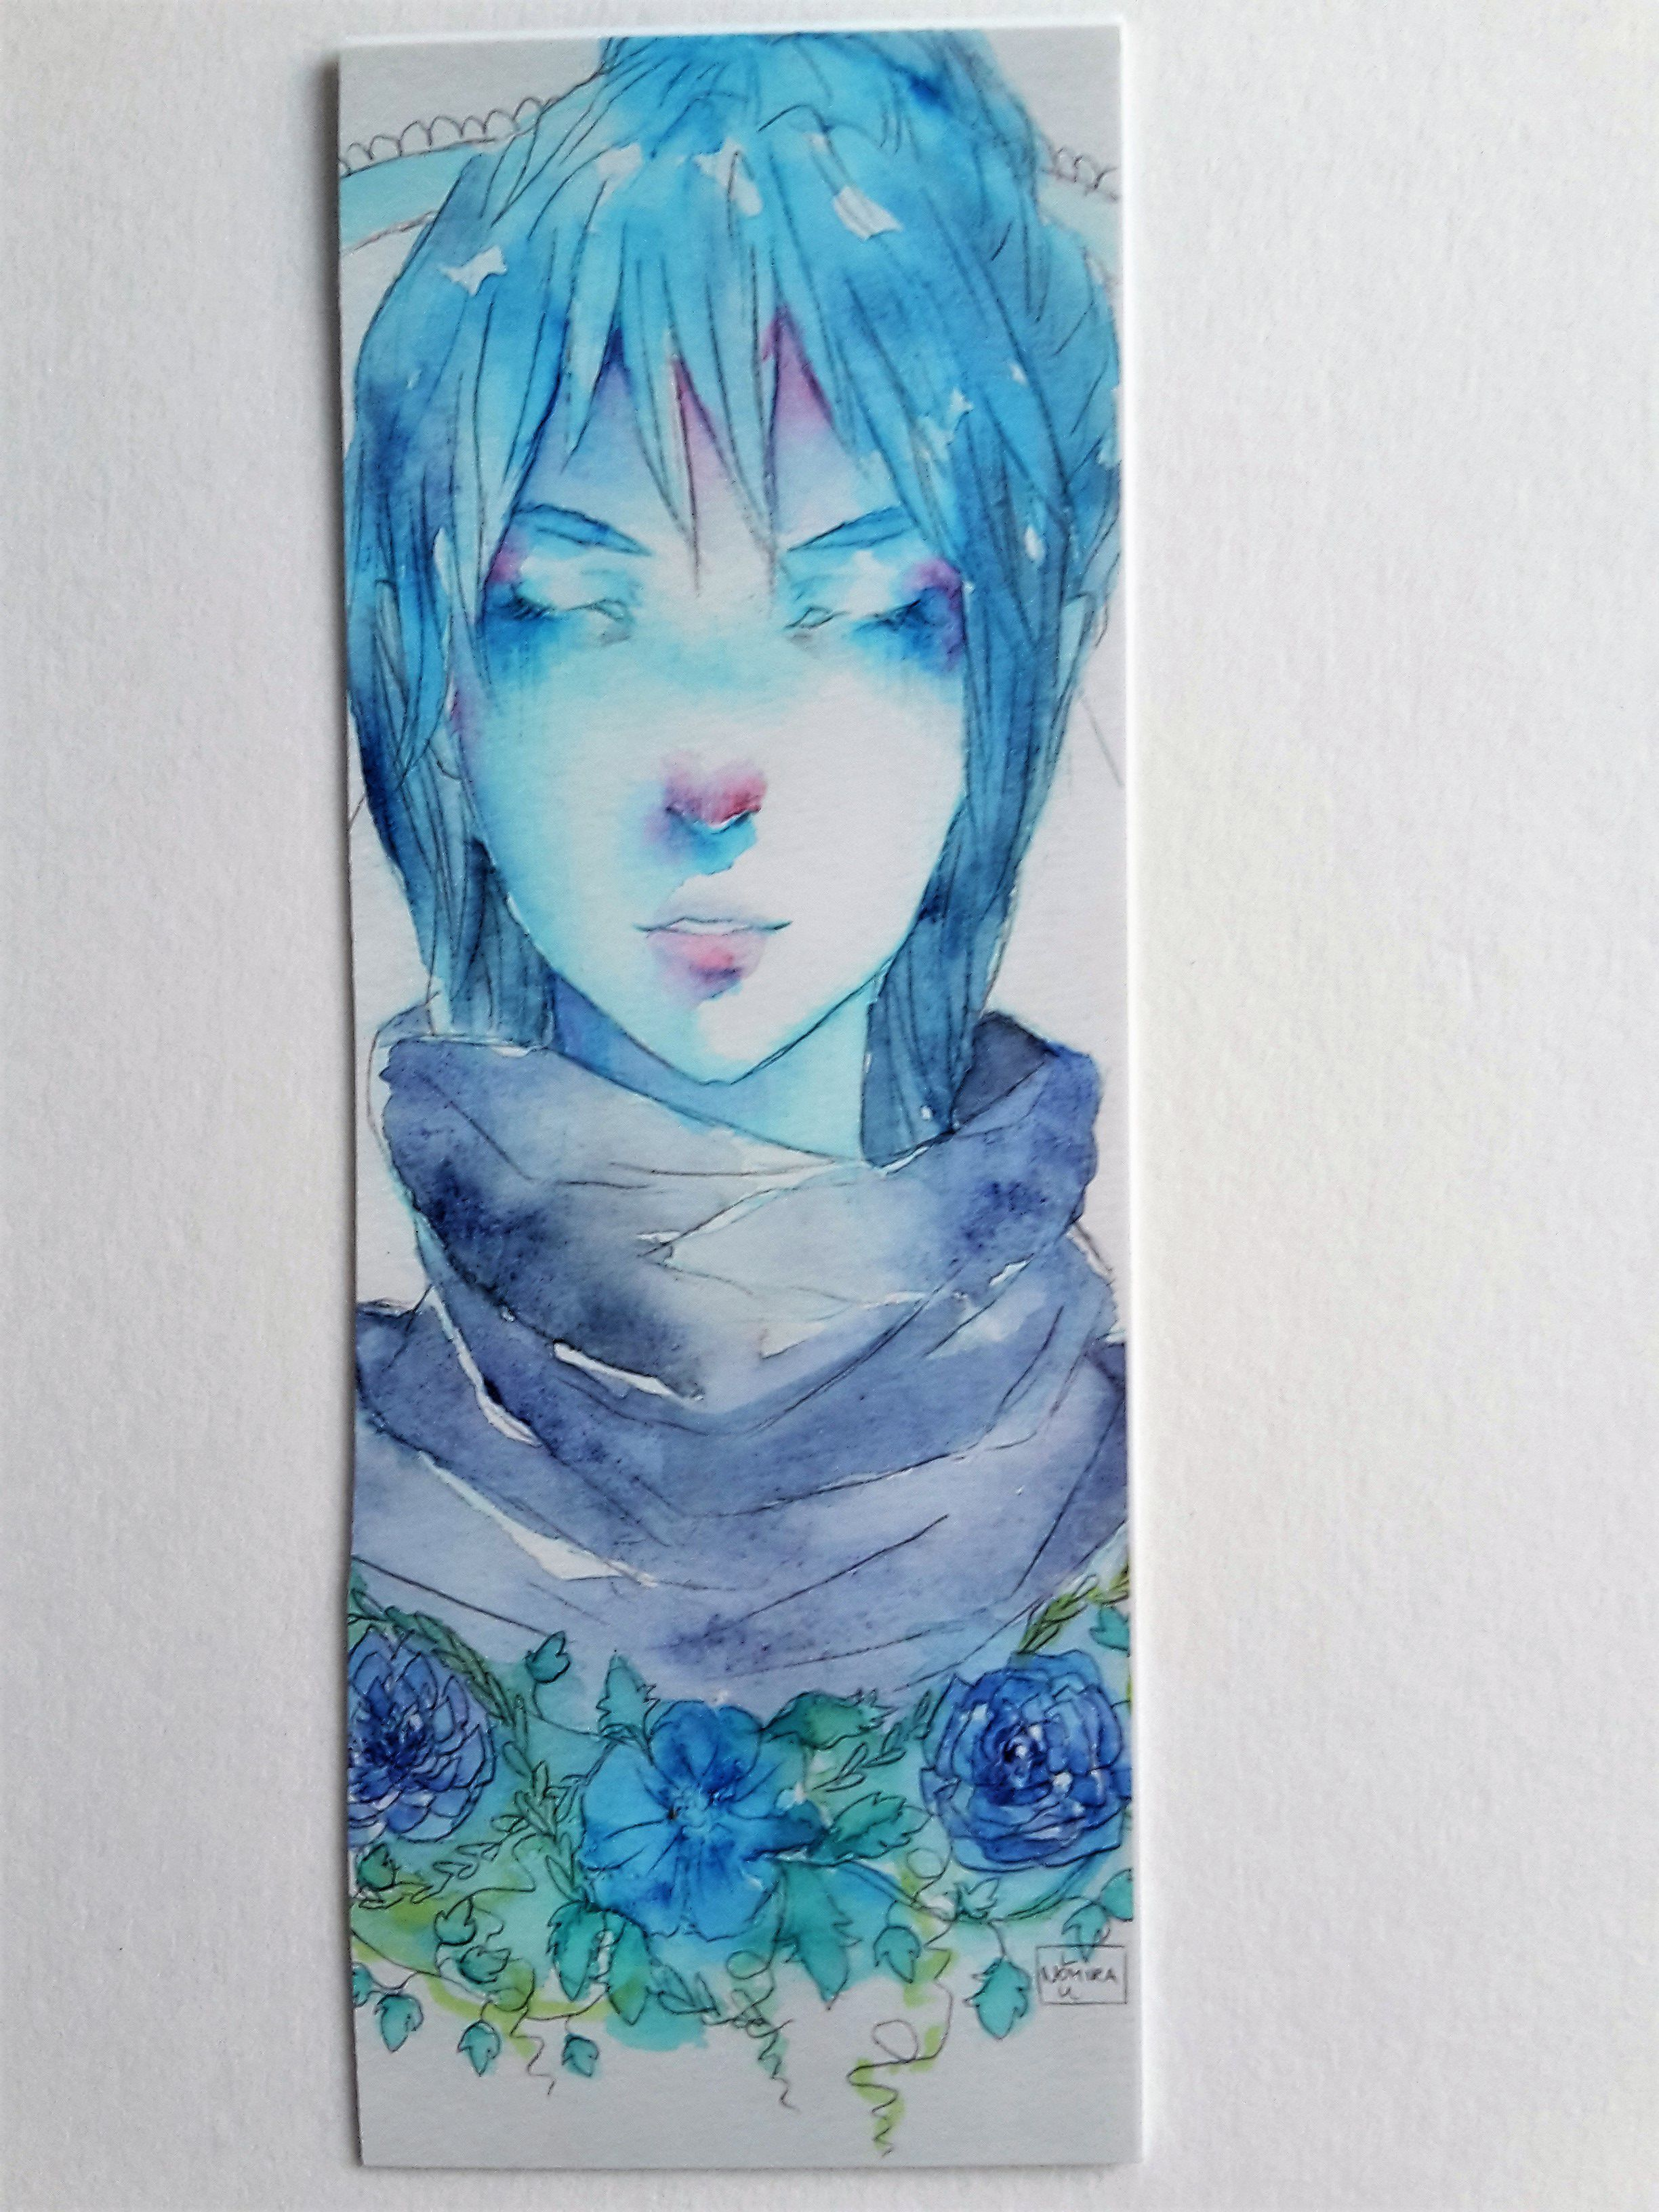 art flowers painting cute artist drawing watercolor anime manga bookmark reading